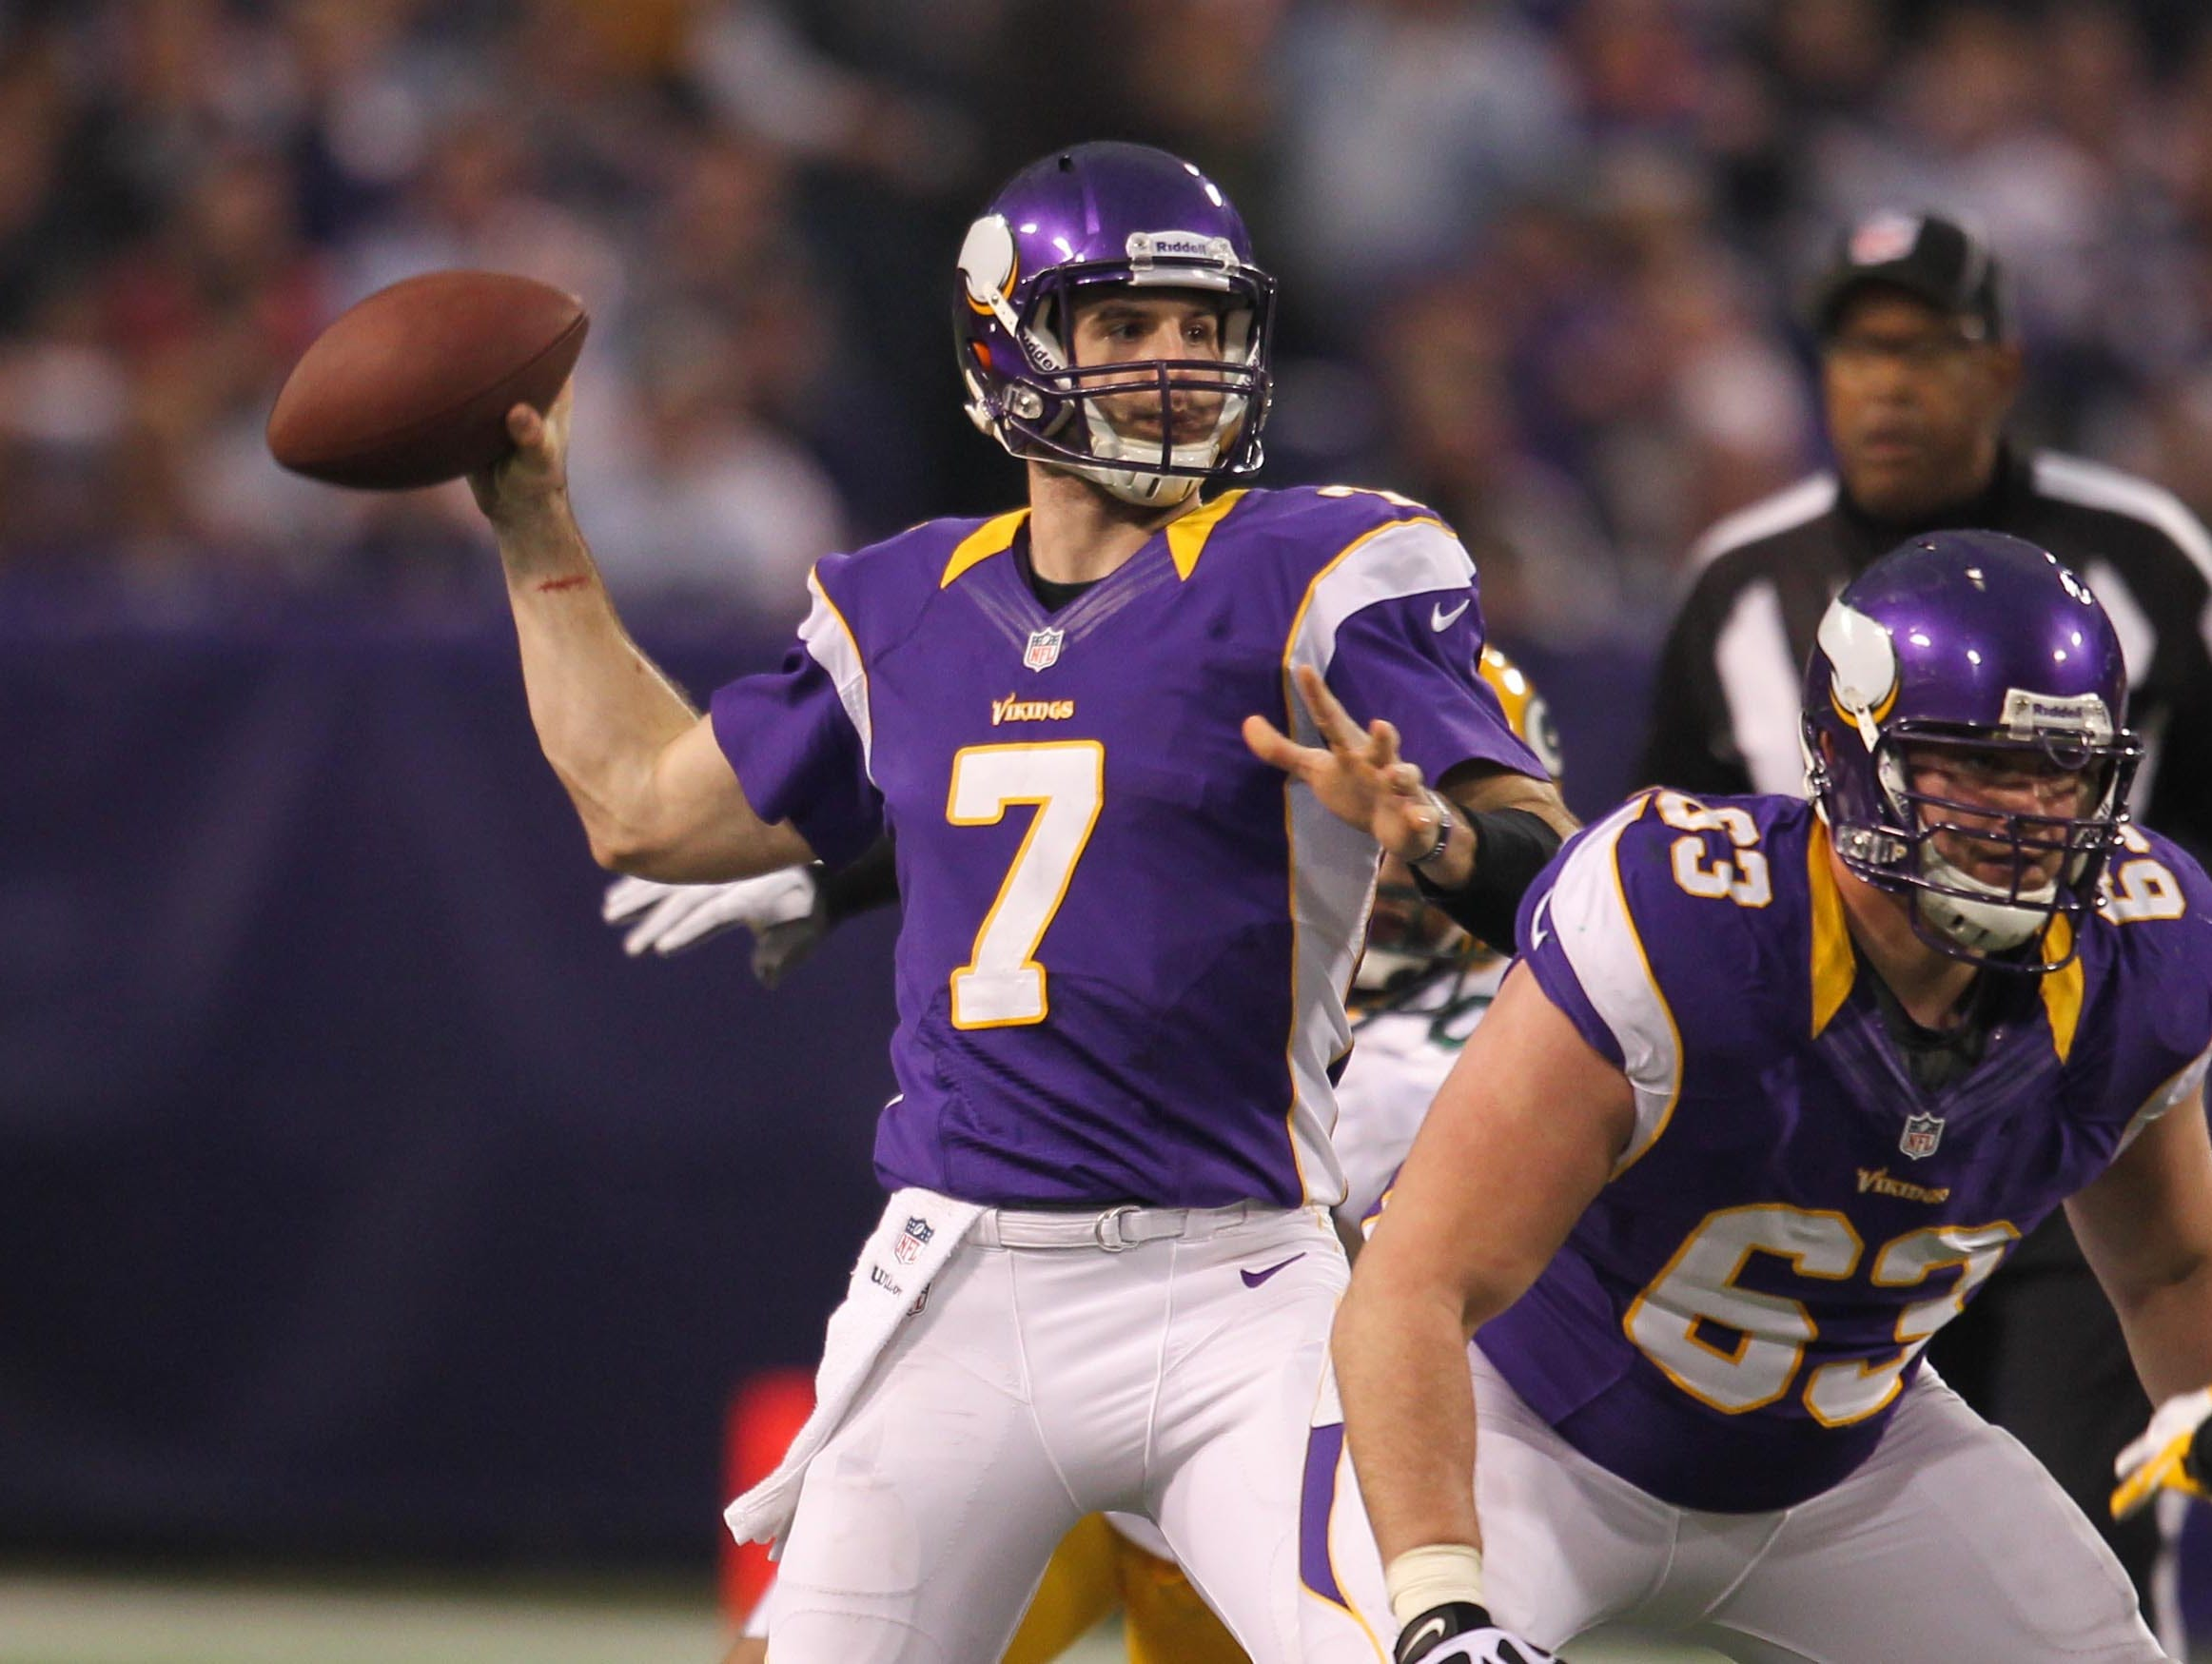 27. Christian Ponder, Minnesota Vikings